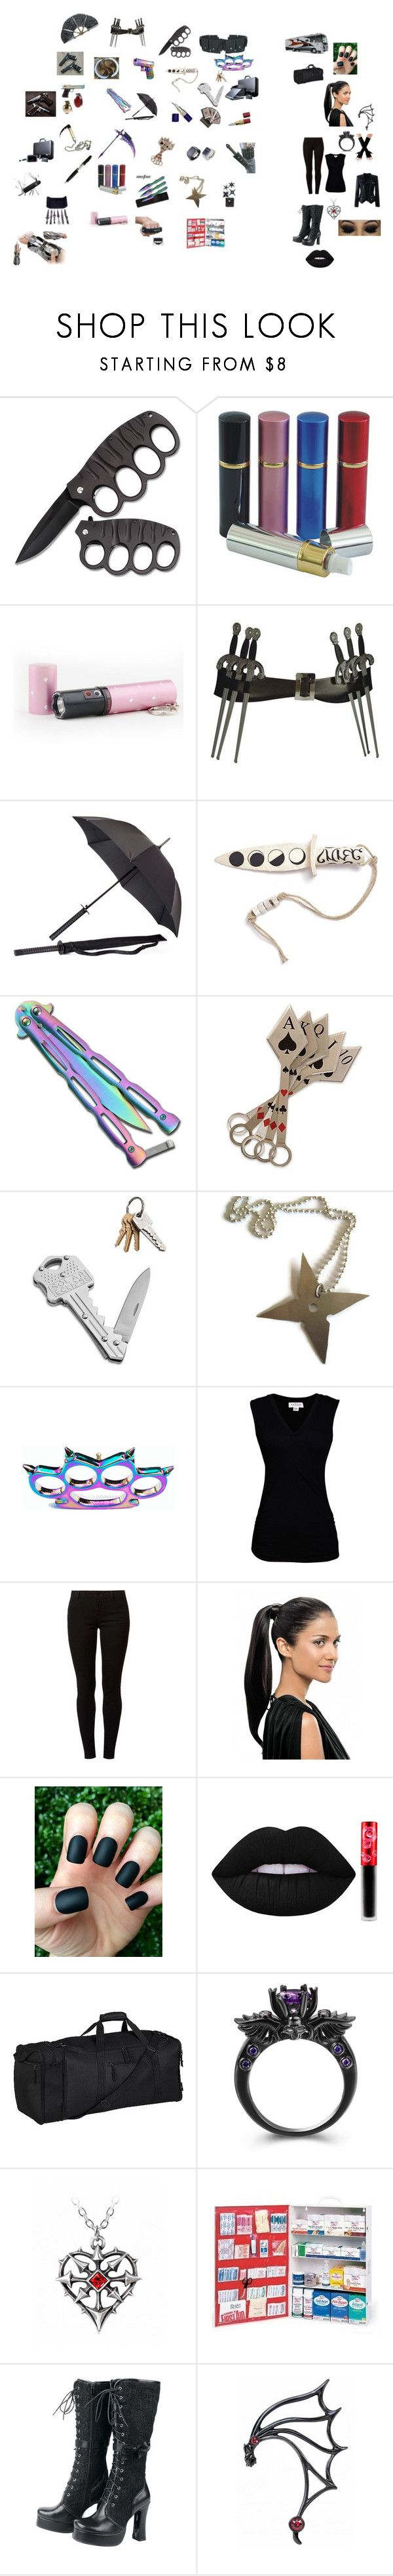 """Hiding from S.H.I.E.L.D"" by theavengers353 ❤ liked on Polyvore featuring Ultimate, Sony, Spy Optic, Victorinox Swiss Army, S.W.O.R.D., MQuan, Velvet by Graham & Spencer, Dorothy Perkins and Lime Crime"